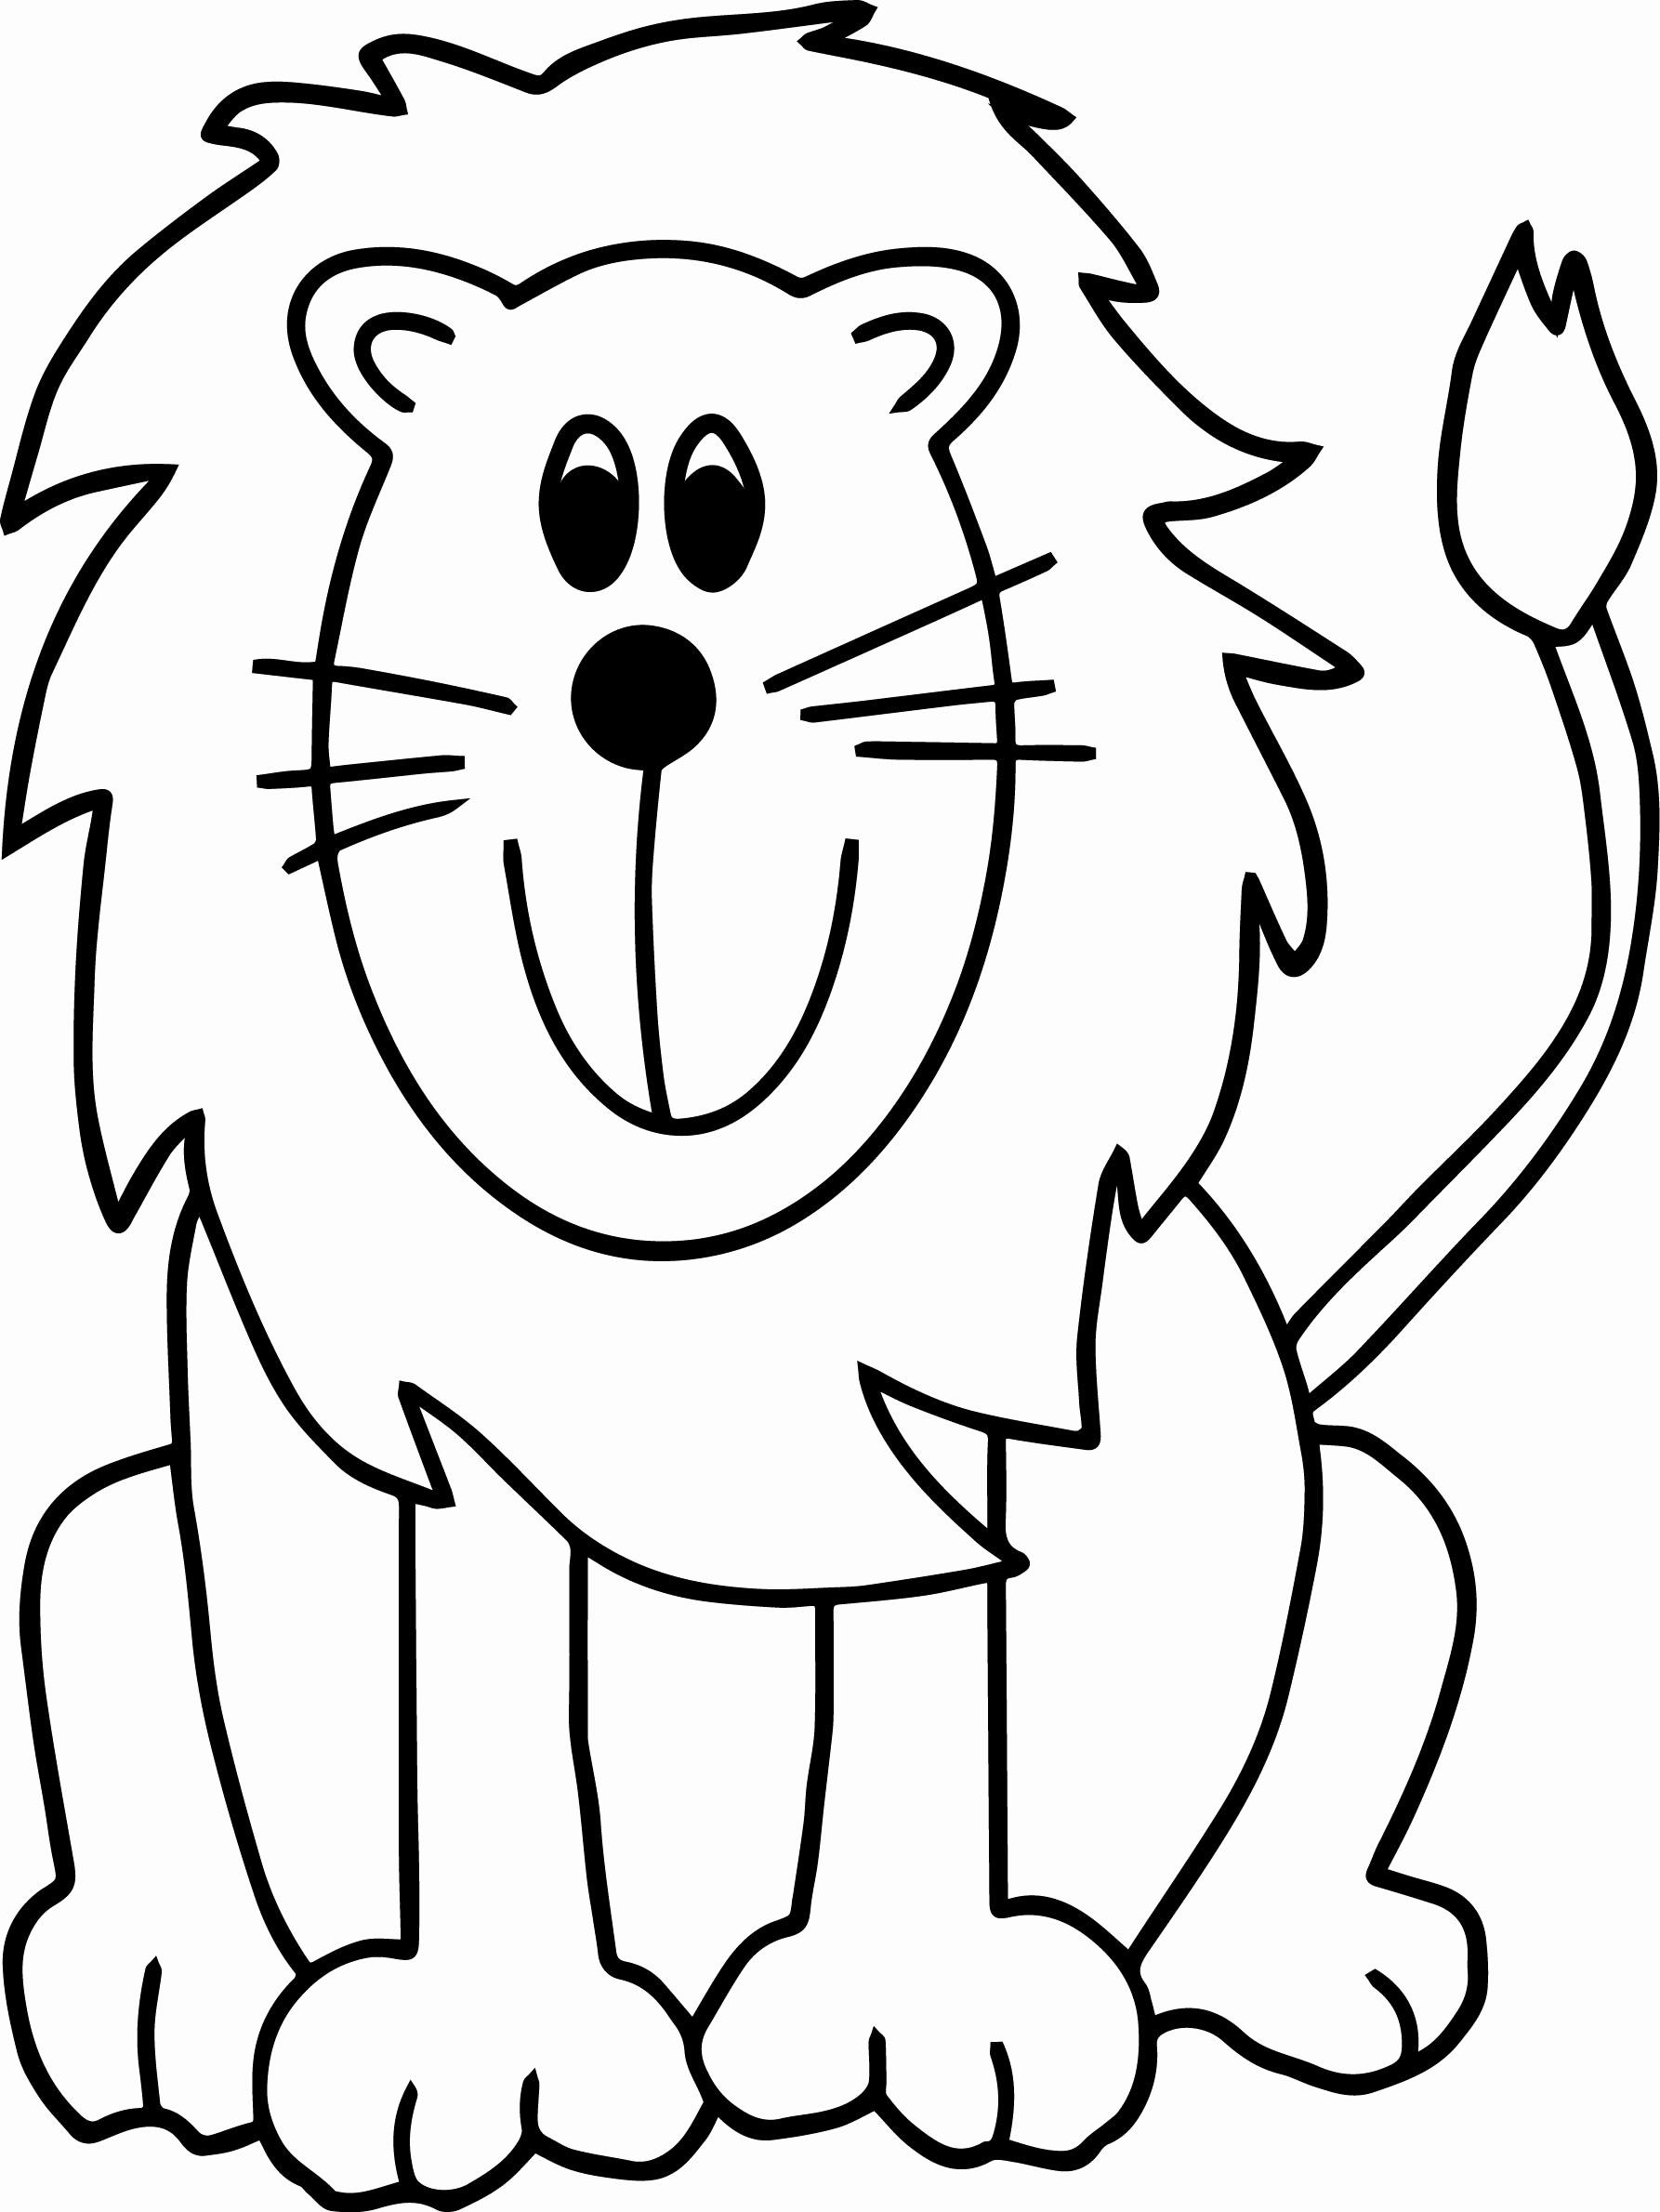 Zoo Animals Coloring Pages in 2020 | Zoo animal coloring ...